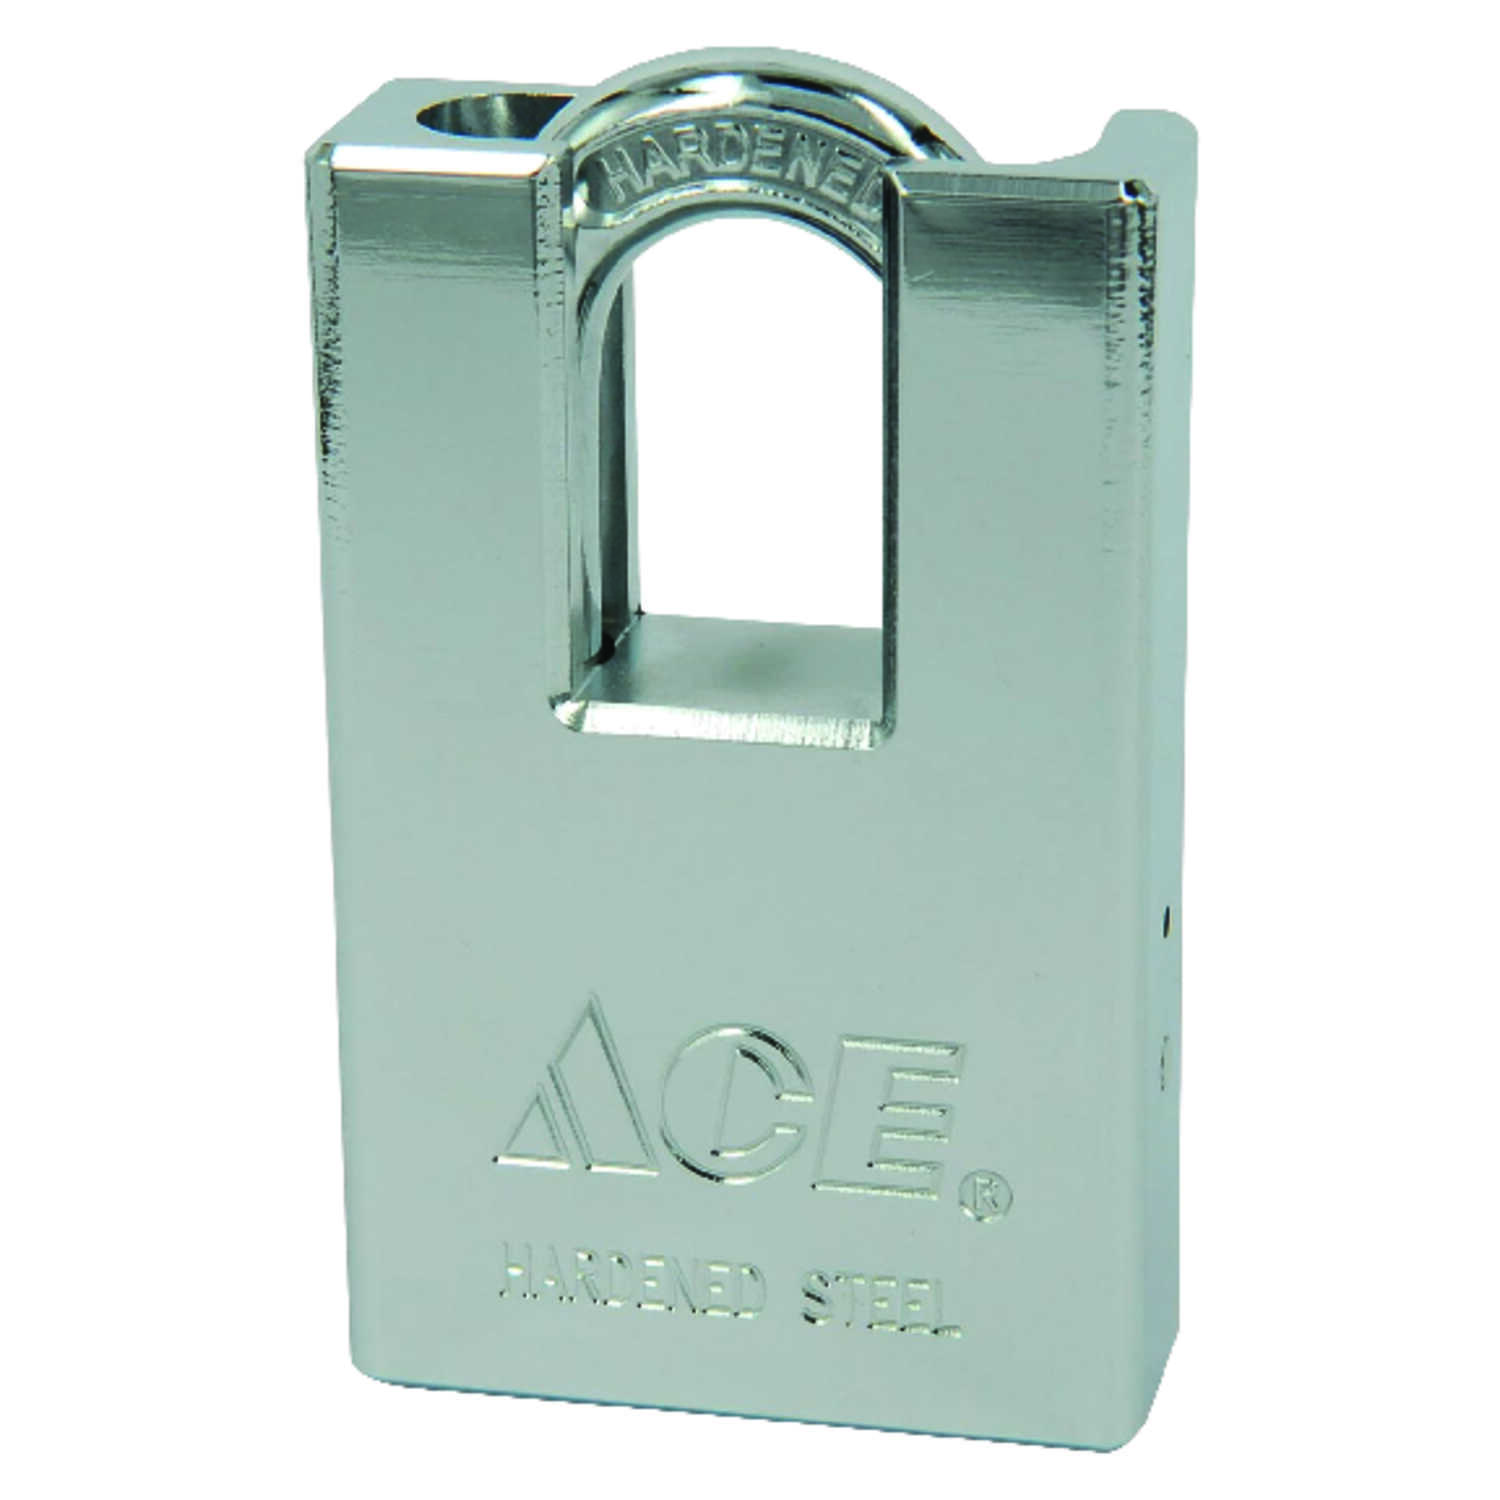 Ace  1-13/16 in. H x 2 in. W x 3/4 in. L Steel  Double Ball Locking  Shrouded Shackle Padlock  1 pk